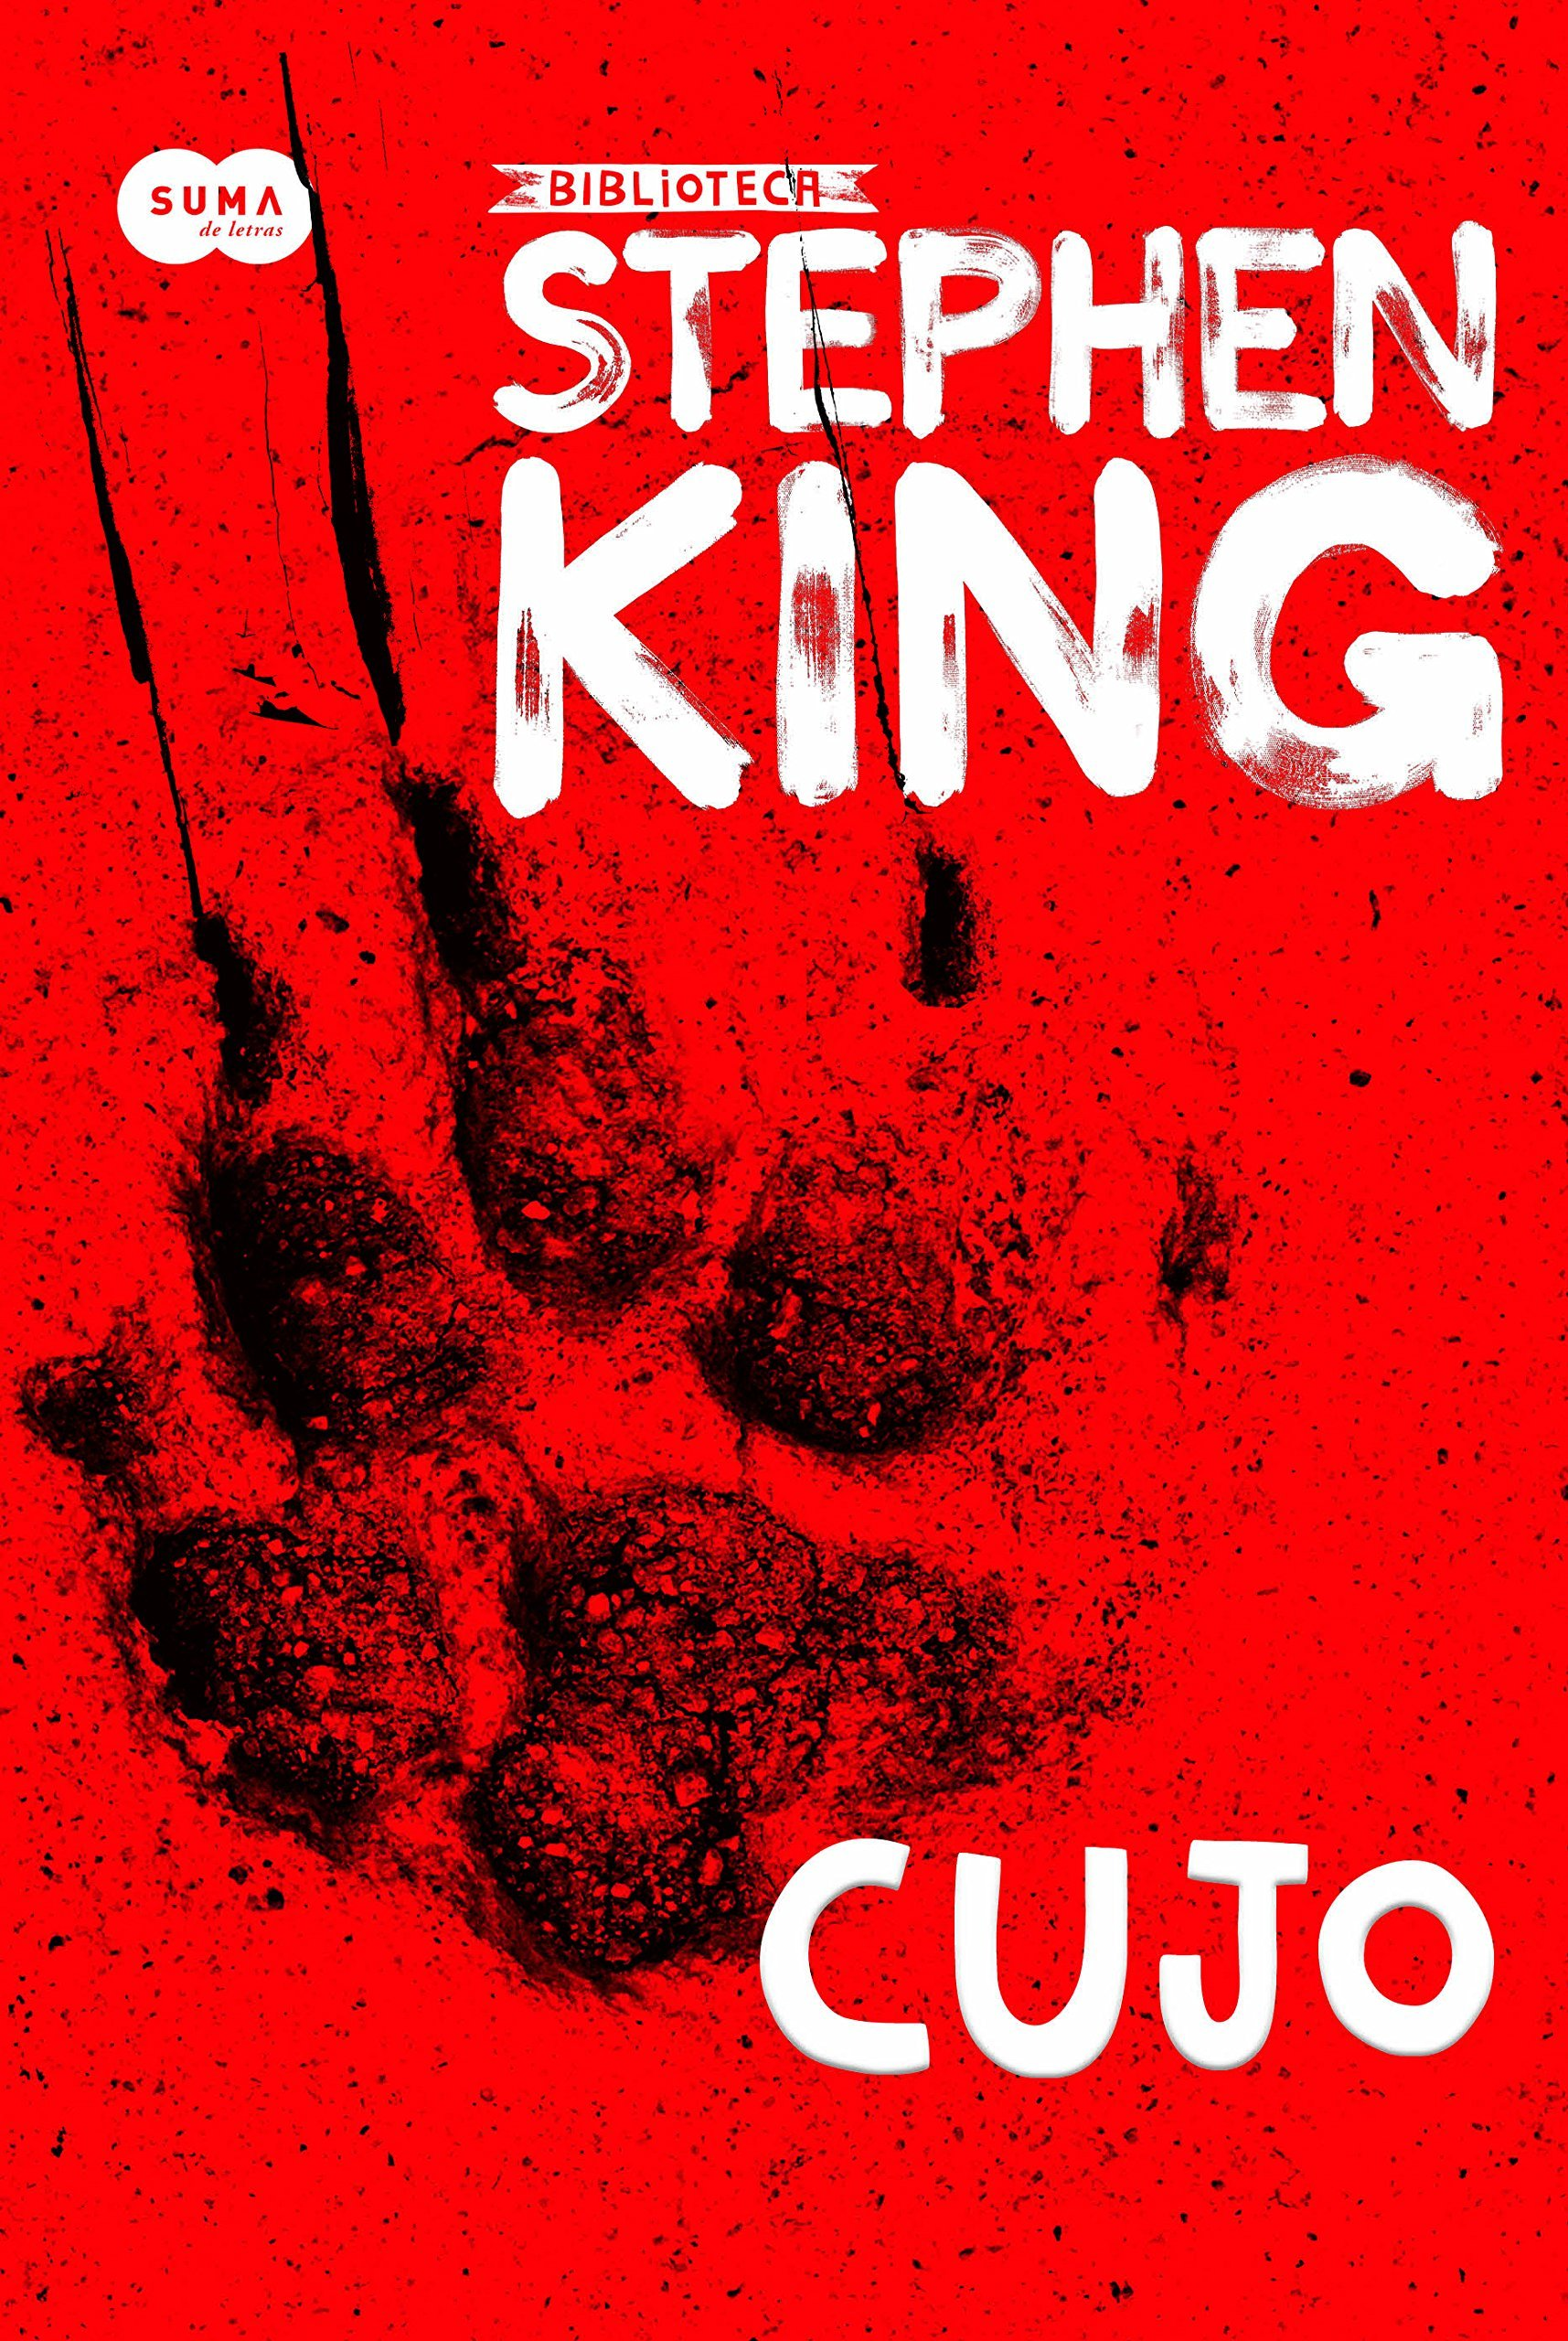 an analysis of cujo by stephen king Cujo affirms the irony of stephen king's popular success: we are obsessed with fear, running sacred of our daily lives, where we can no longer trust the food we eat, our machines, our neighbor's dog, or even ourselves    we are trapped by a reality as loathsome and ambiguous as the good dog gone bad - trapped between an uncertain future and.